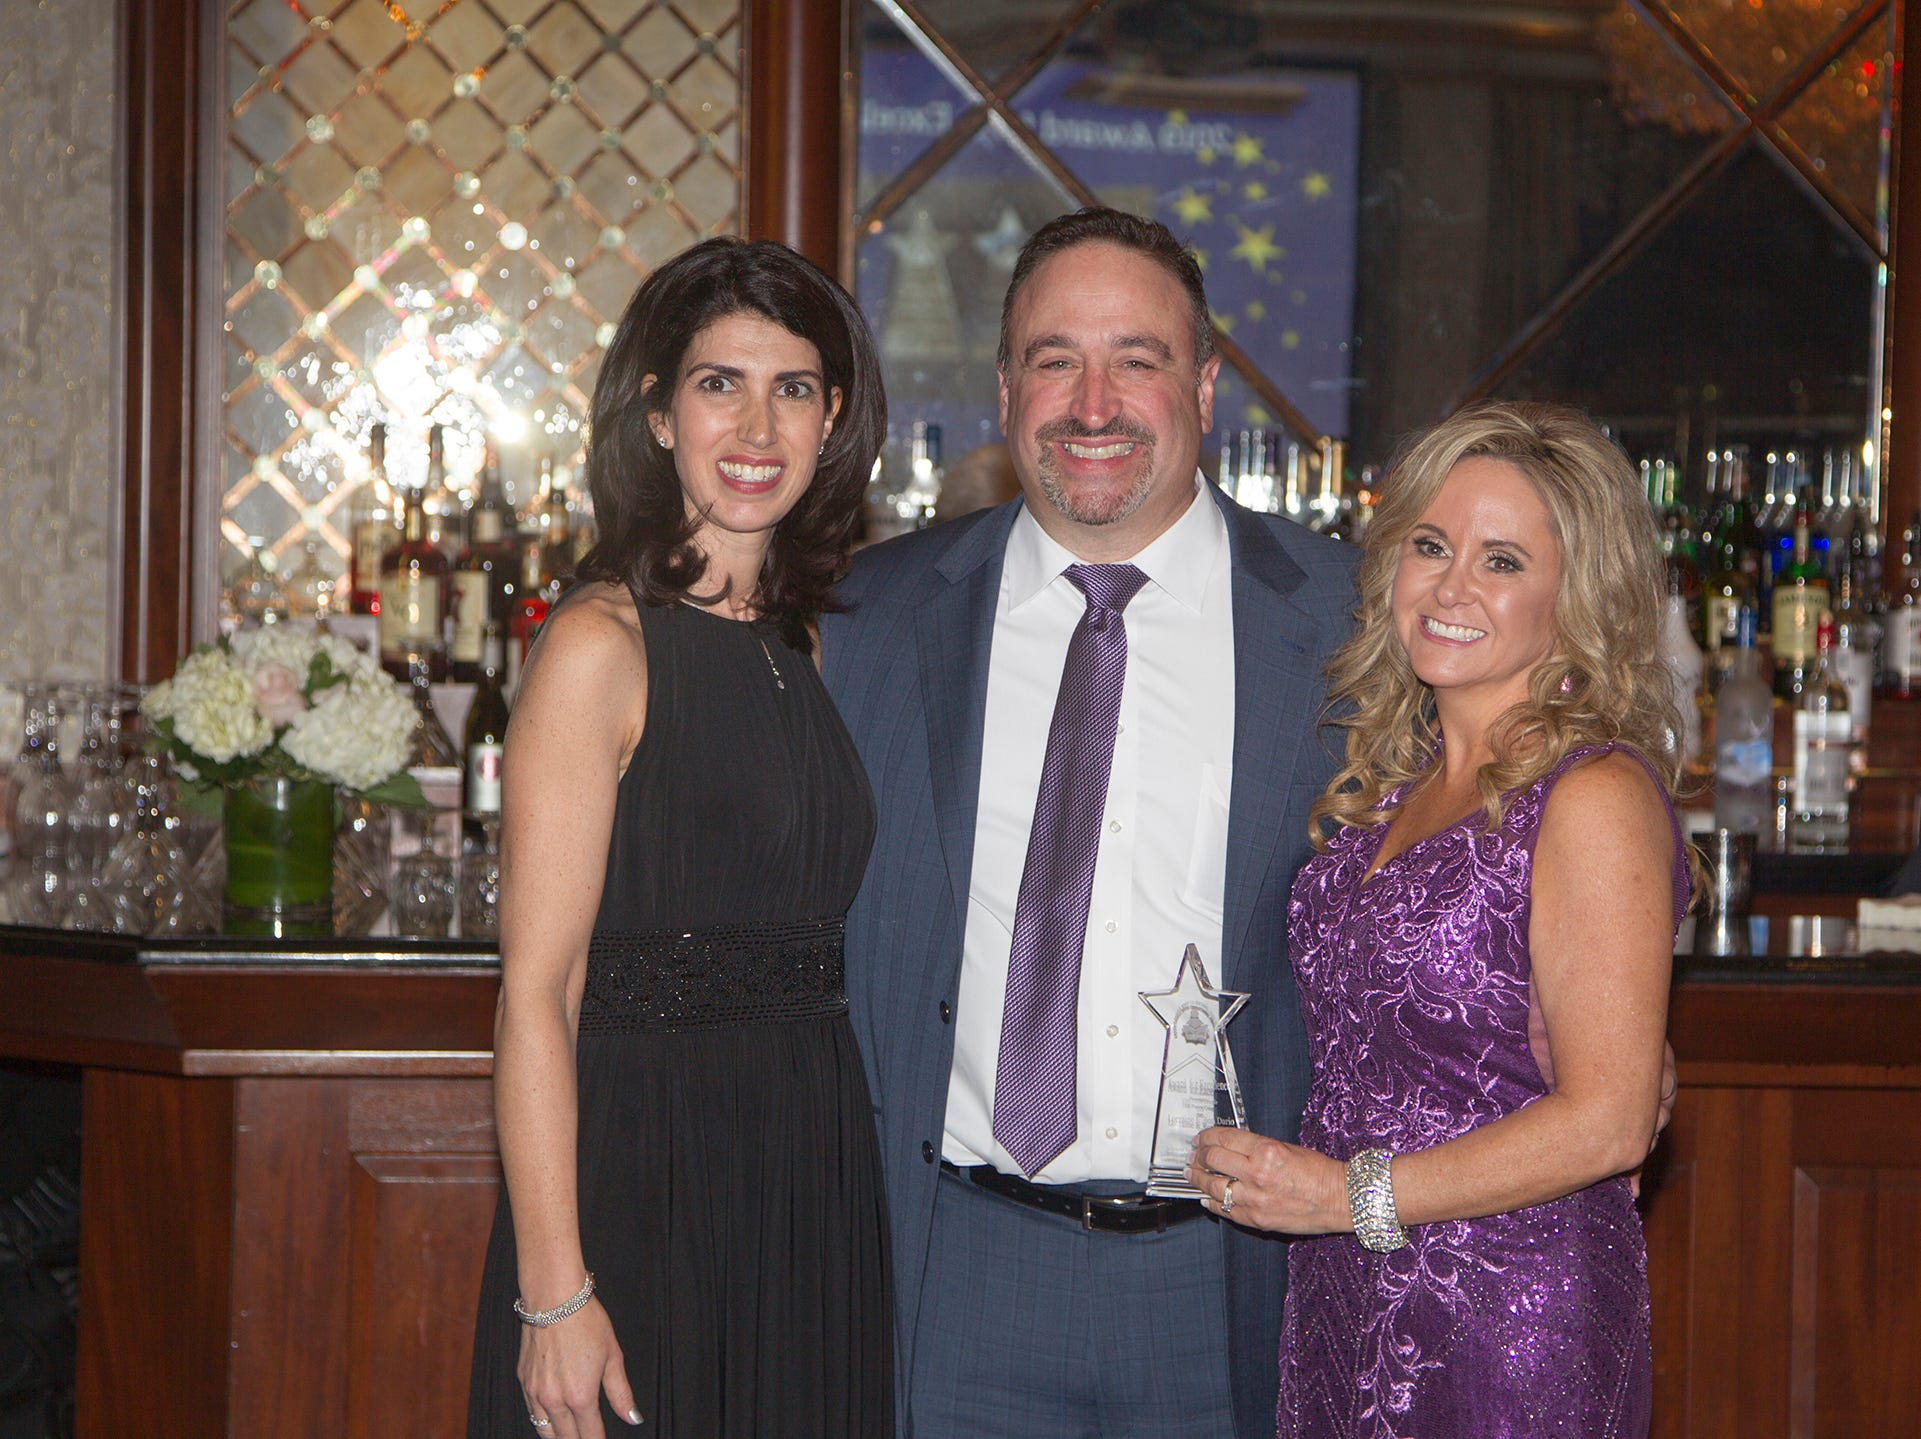 Karen Mueller, Ron and Lorraine Dario. Upper Saddle River Education Foundation hosted its Town Night Out Gala at Seasons in Washington Twp. 04/06/2019